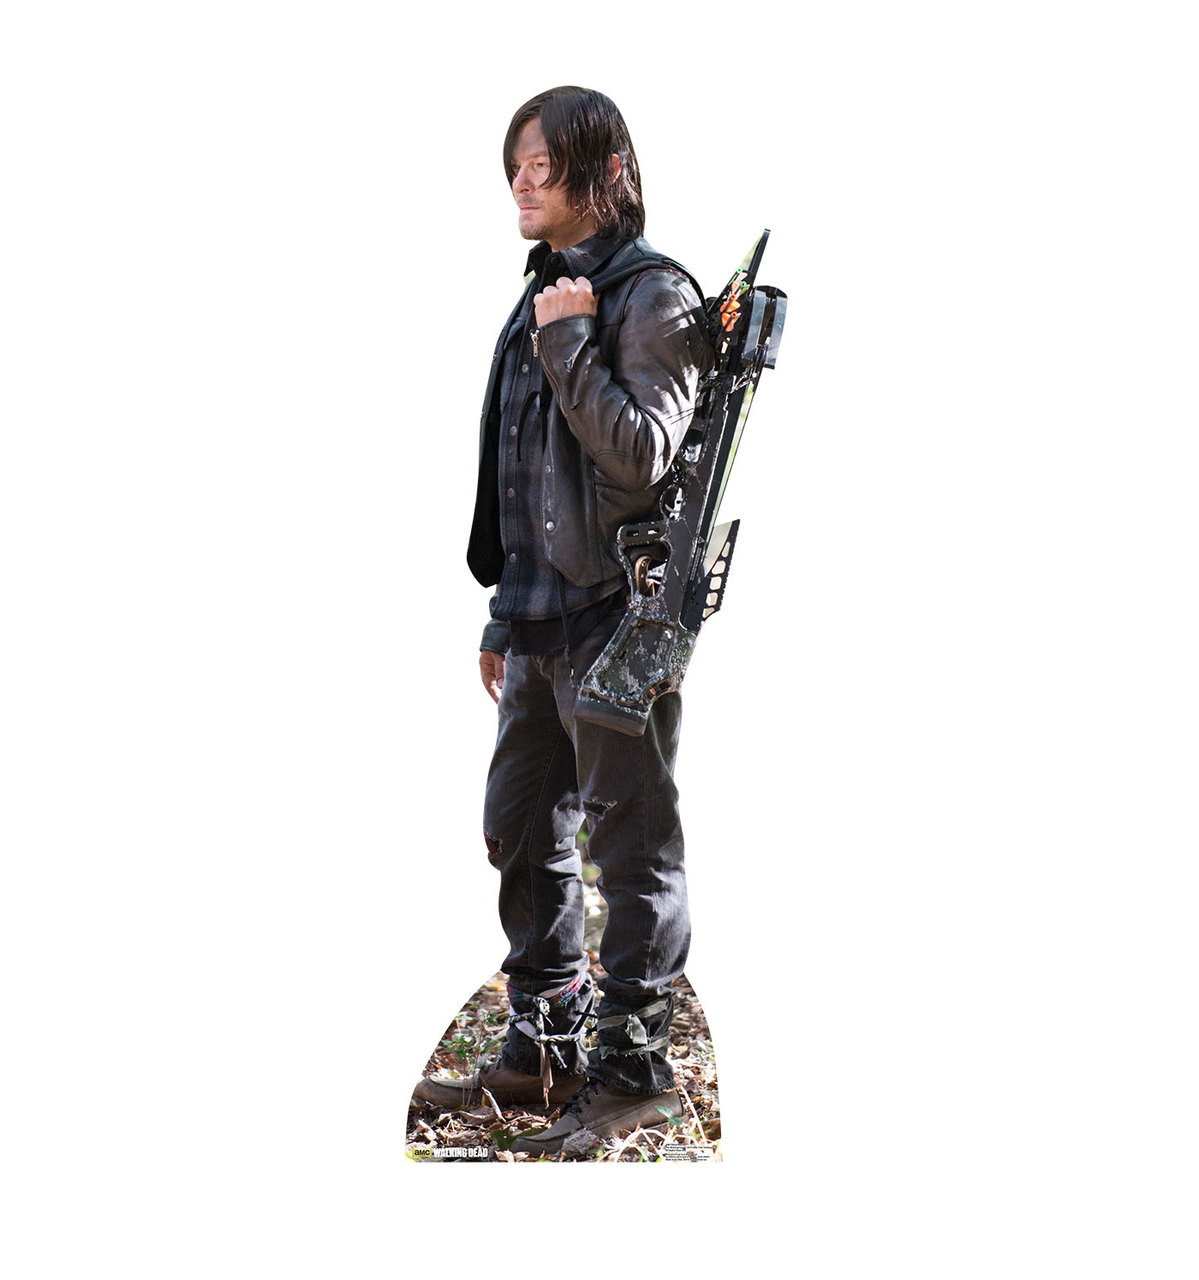 Life-size Daryl Dixon  (The Walking Dead) Cardboard Standup